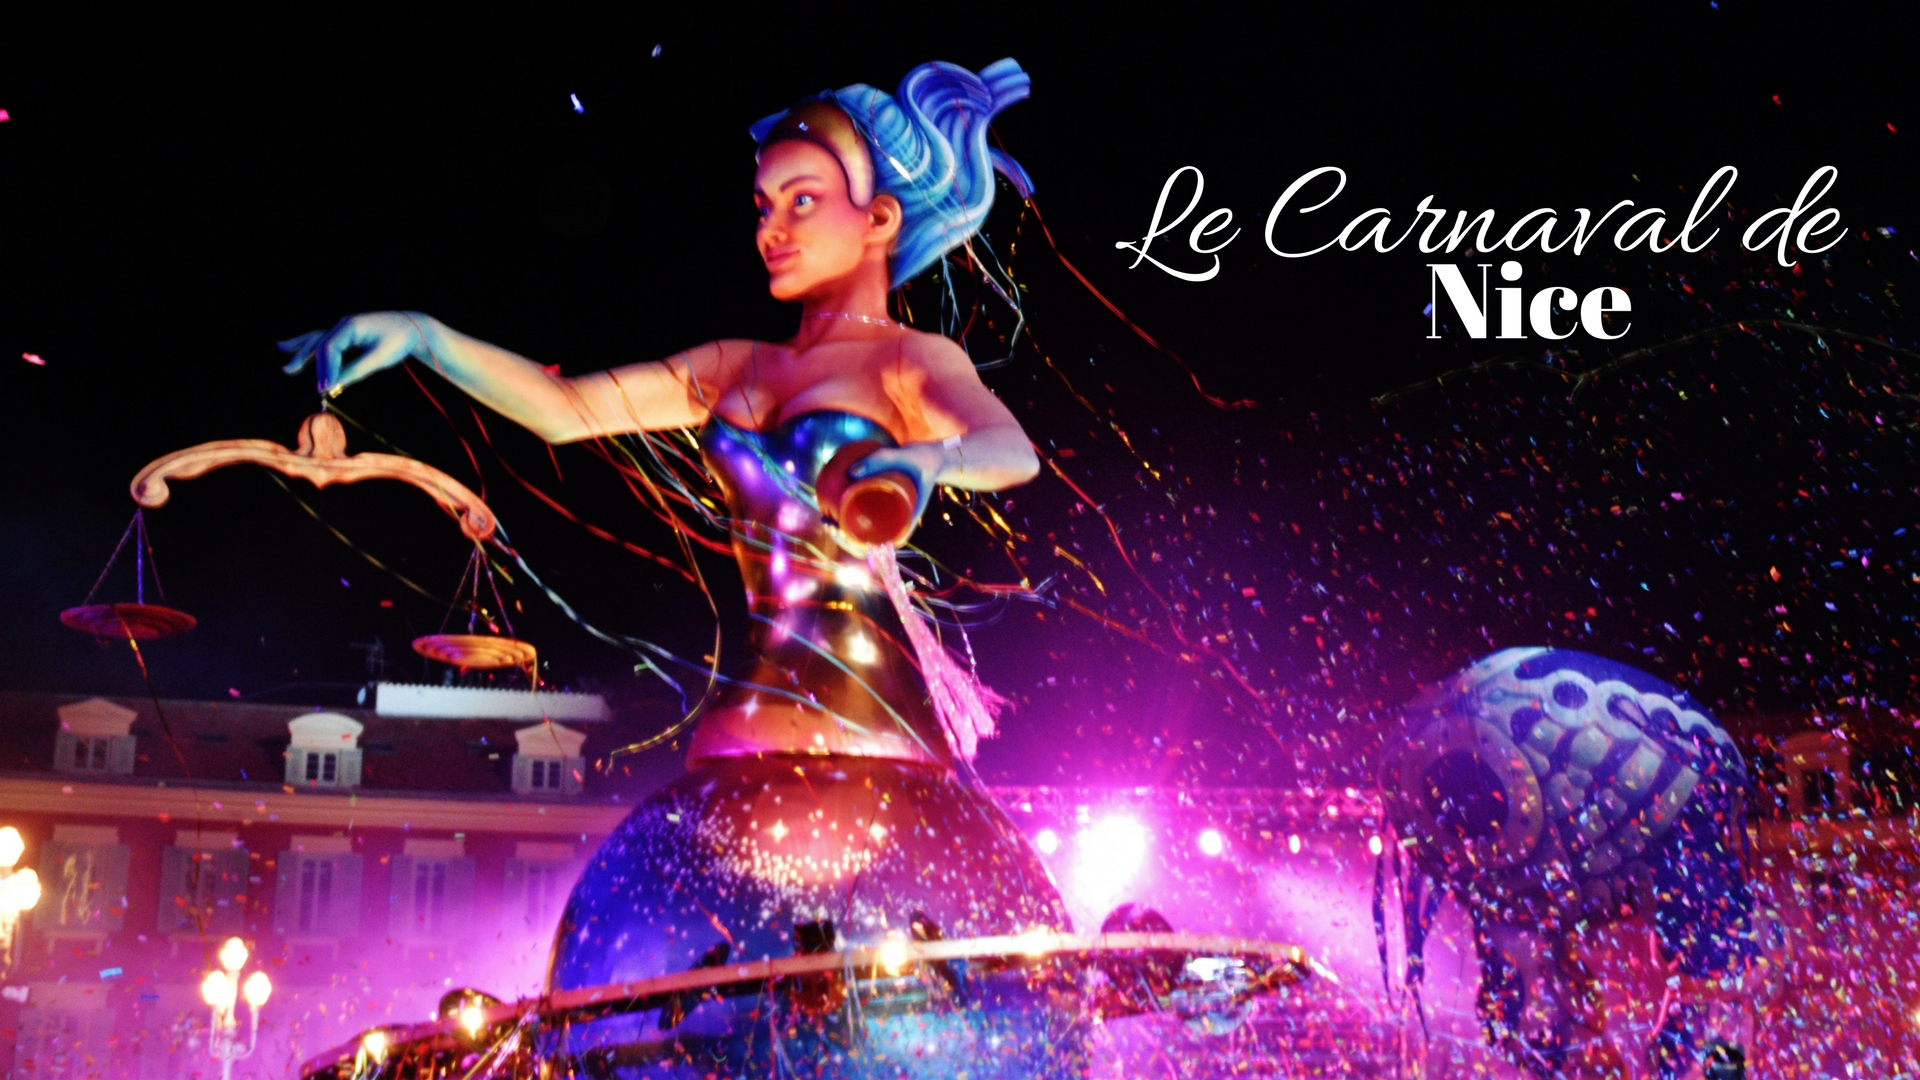 Le Carnaval de Nice - Dreams World blog voyage